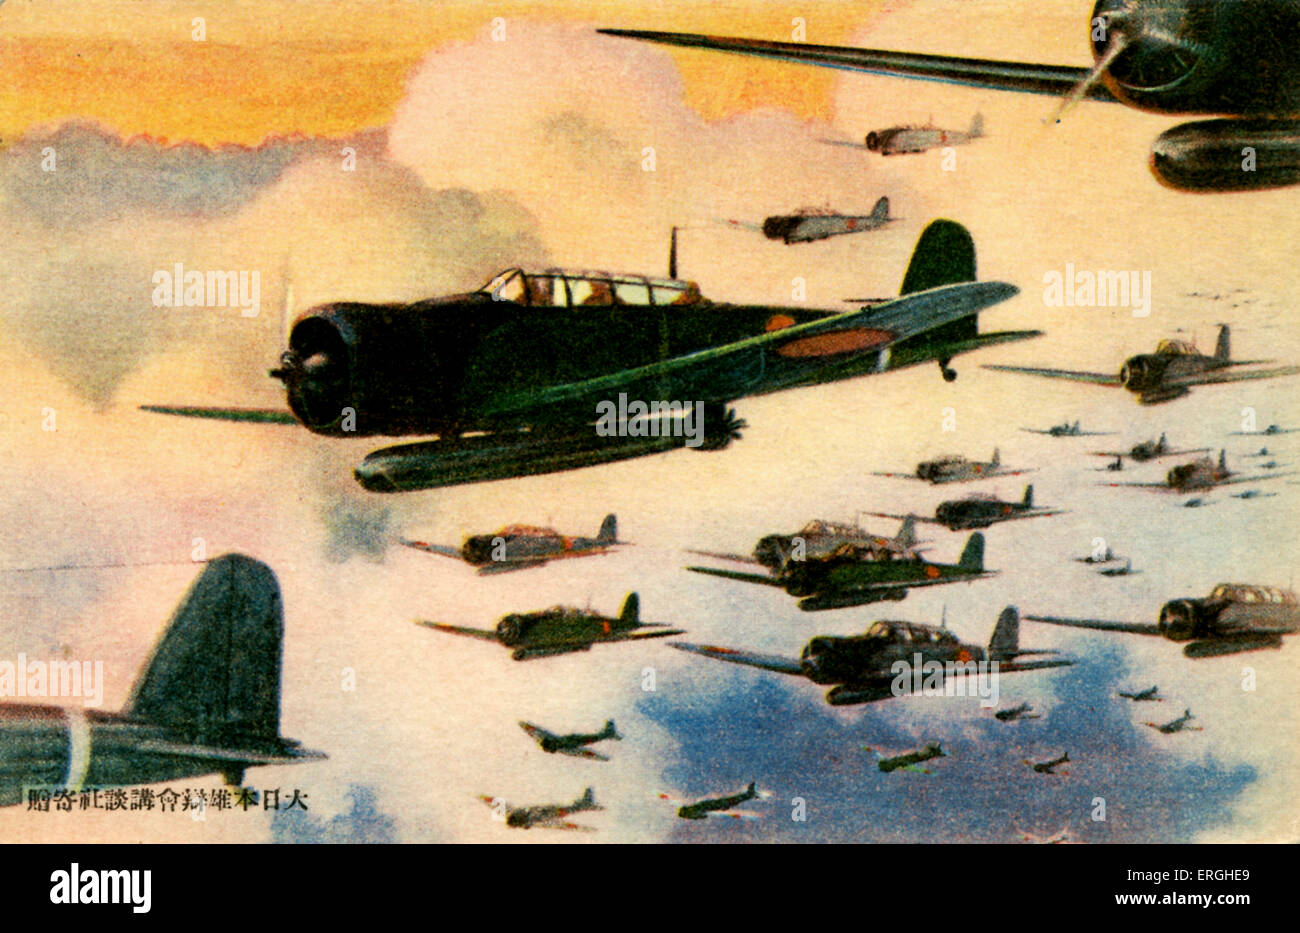 WW2: Japanese fighter aircraft carrying missiles. Japanese postcard. - Stock Image